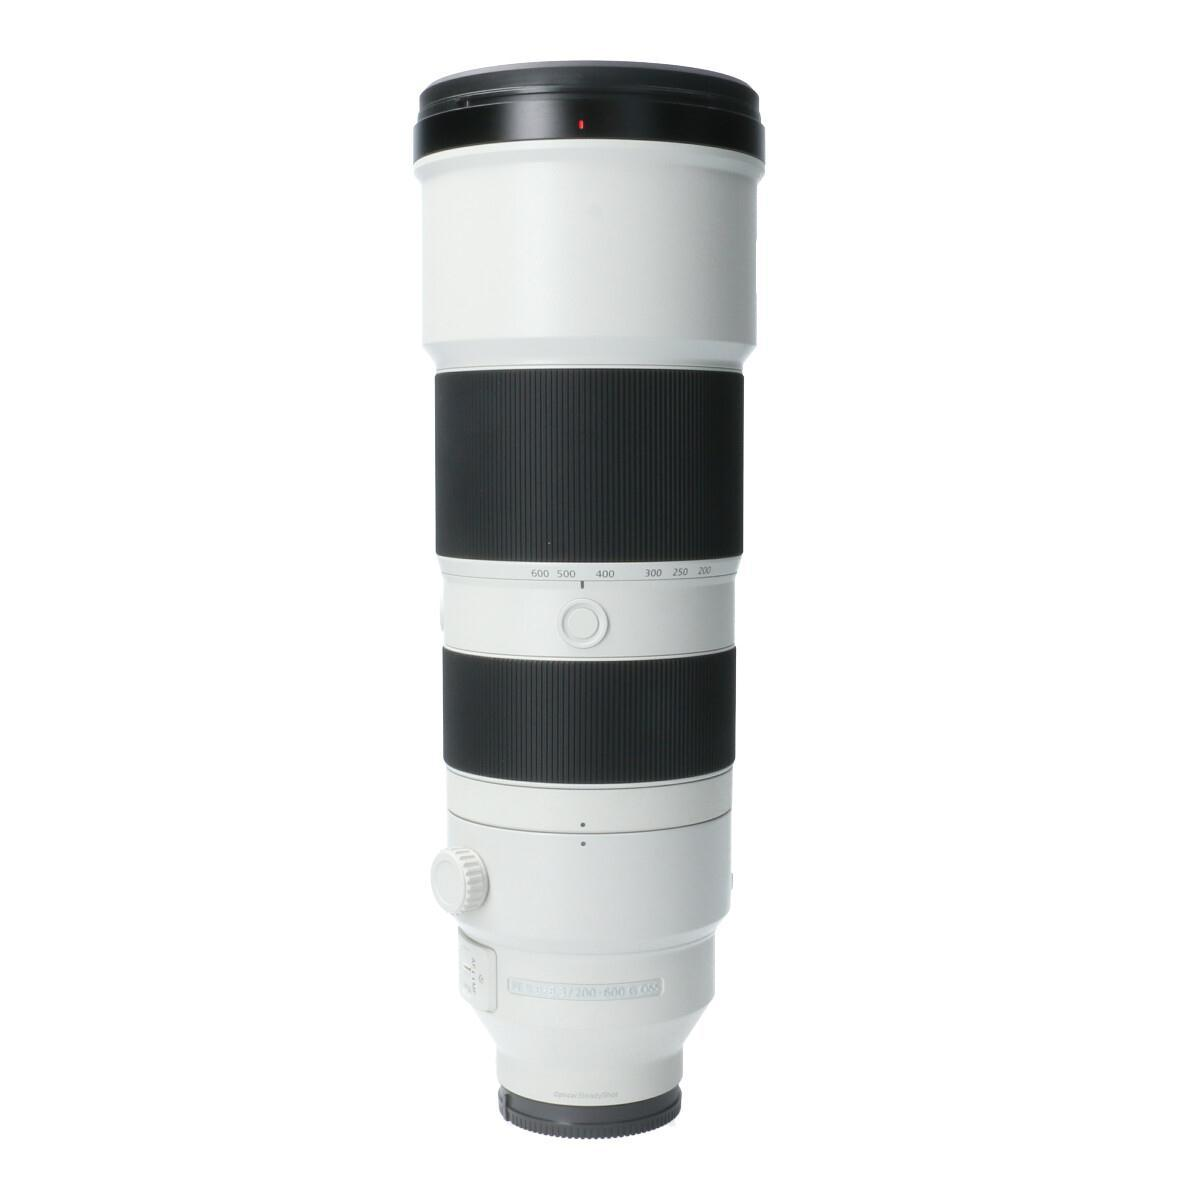 SONY FE200-600mm F5.6-6.3G OSS【中古】